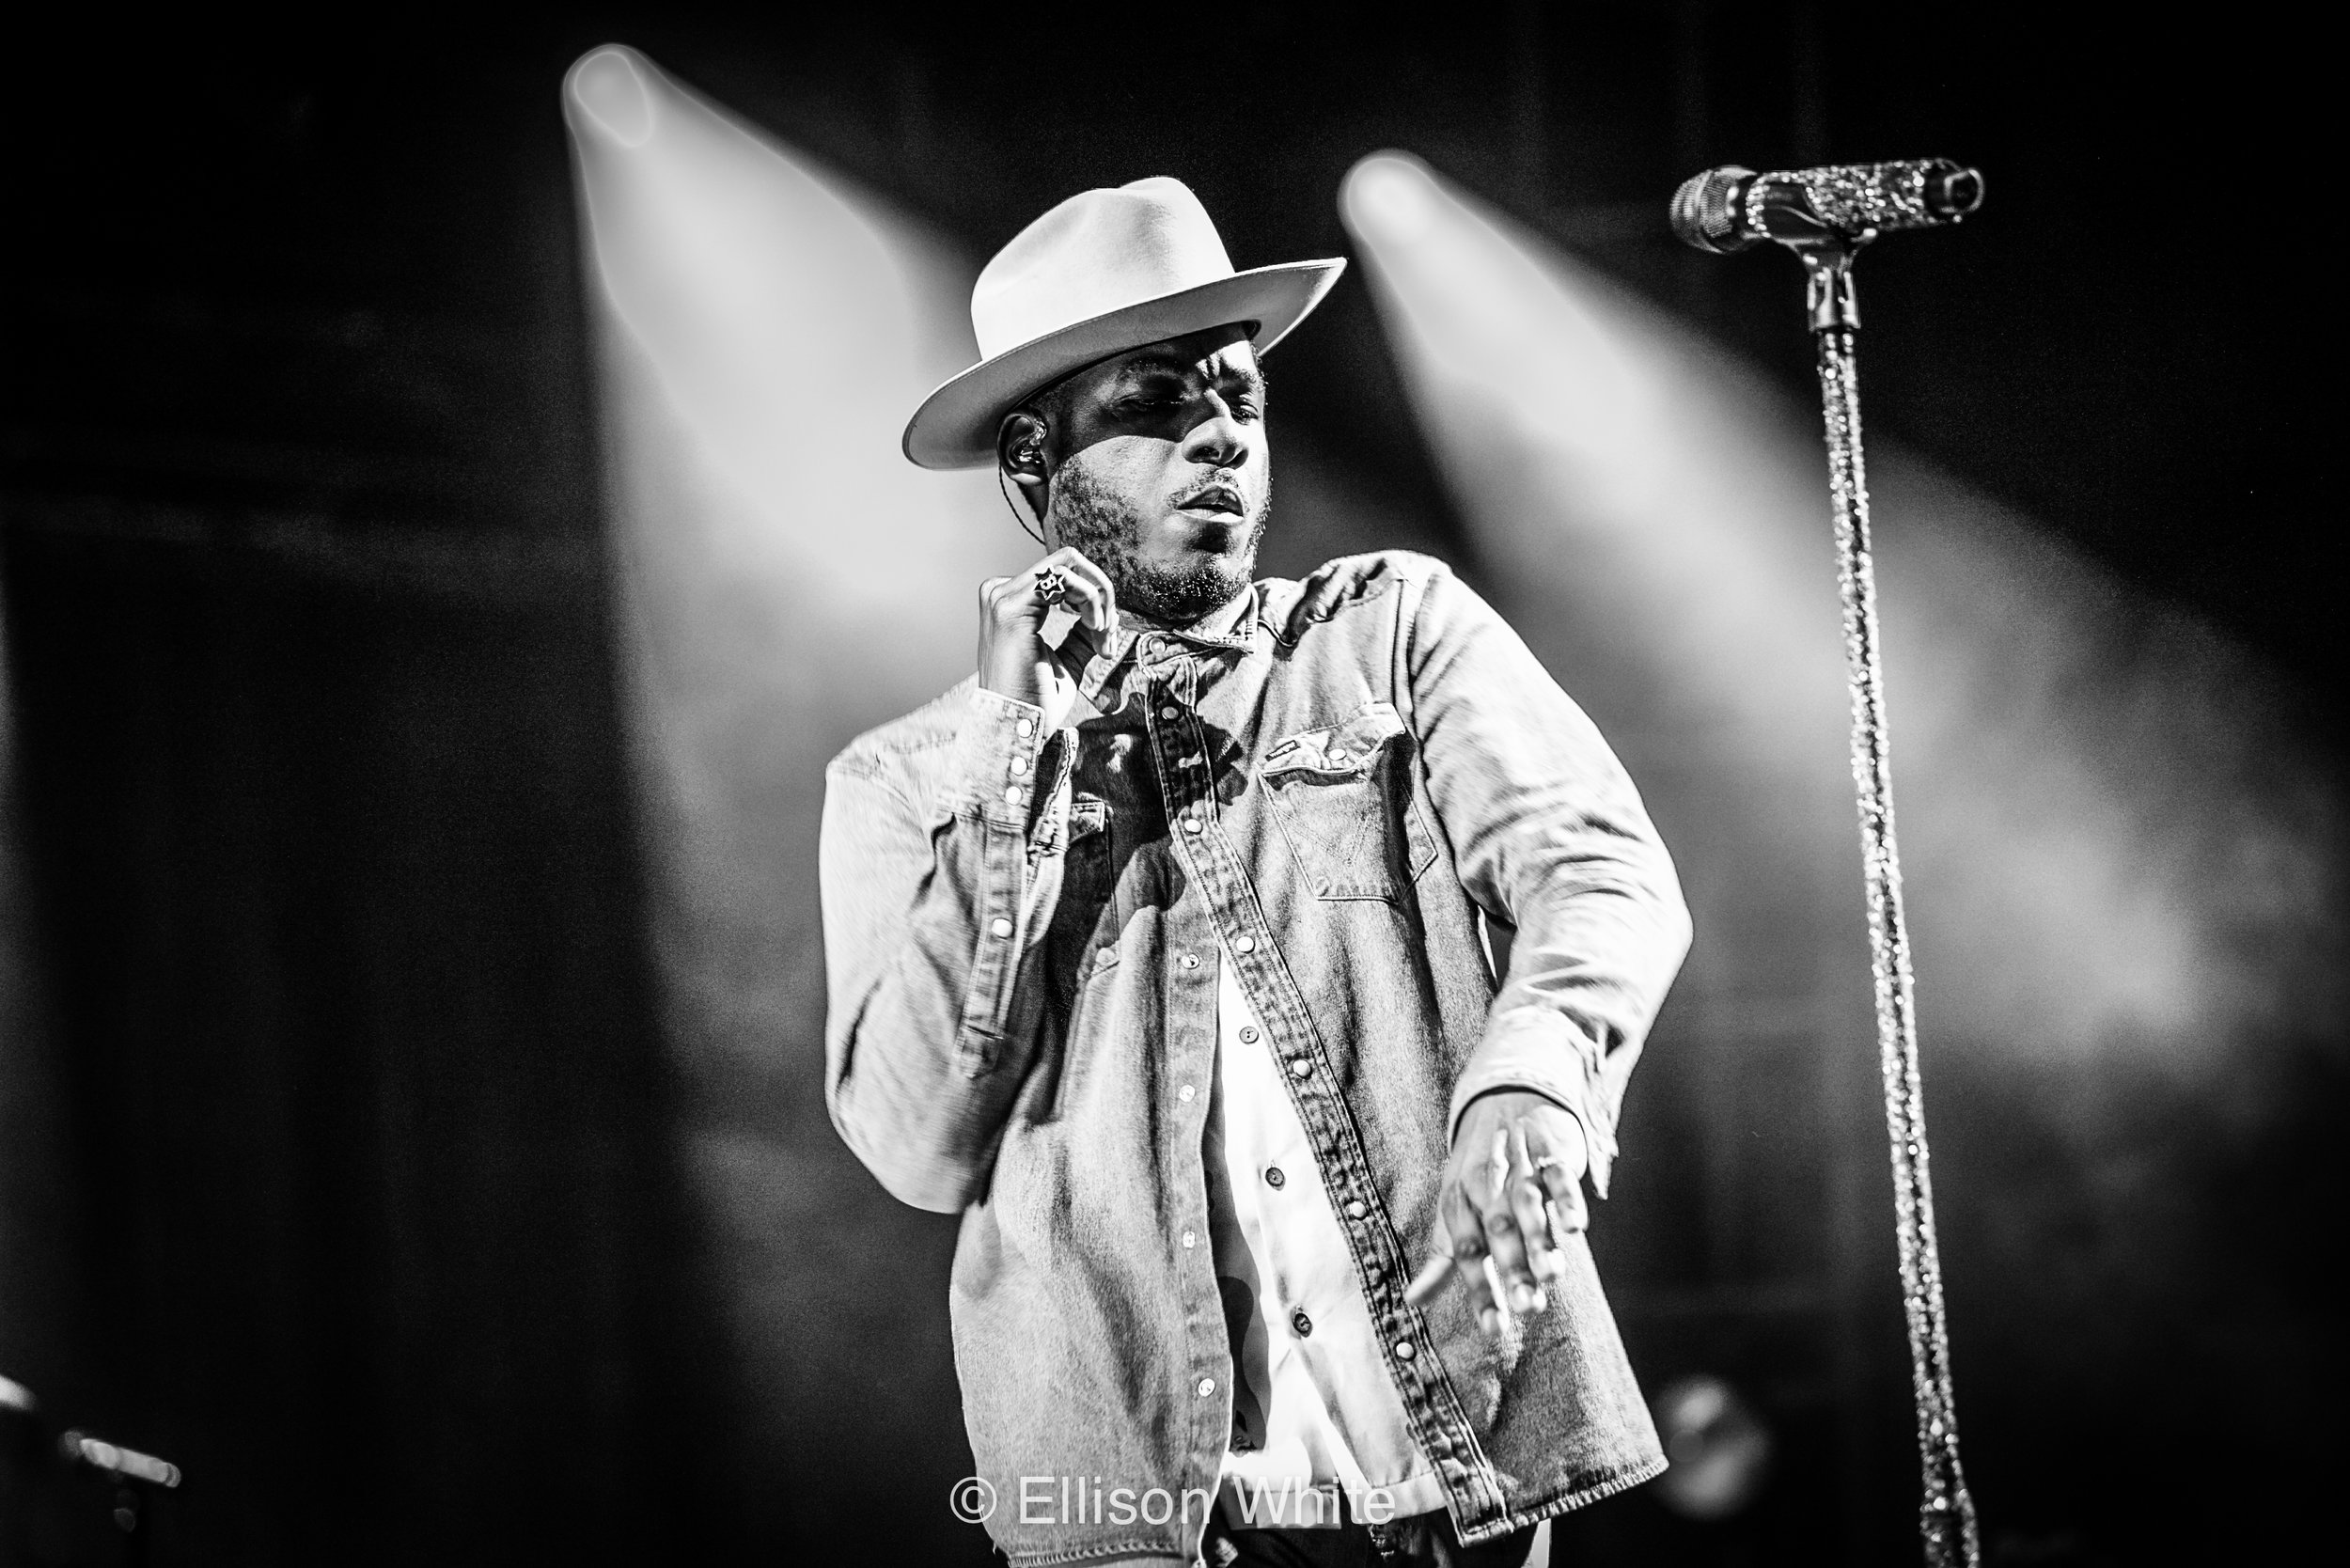 HighwaterFest_LeonBridges_April12_2019-2.jpg